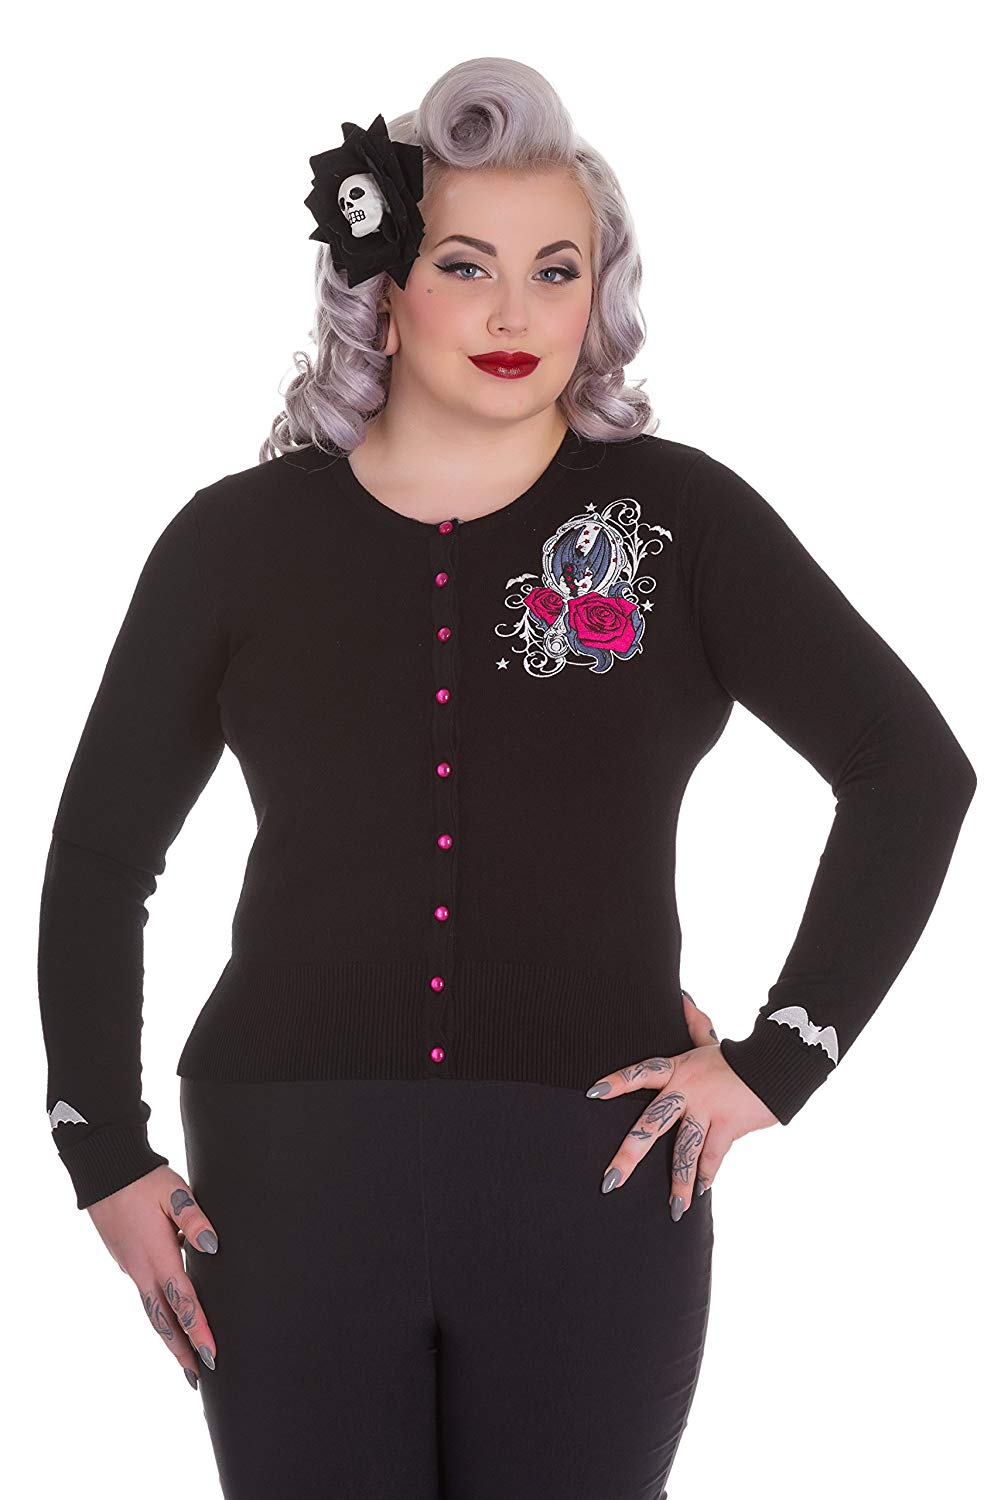 8fde2f7c4 Get Quotations · Hell Bunny Plus Size Gothic Black Kalonice Bat Roses  Cardigan